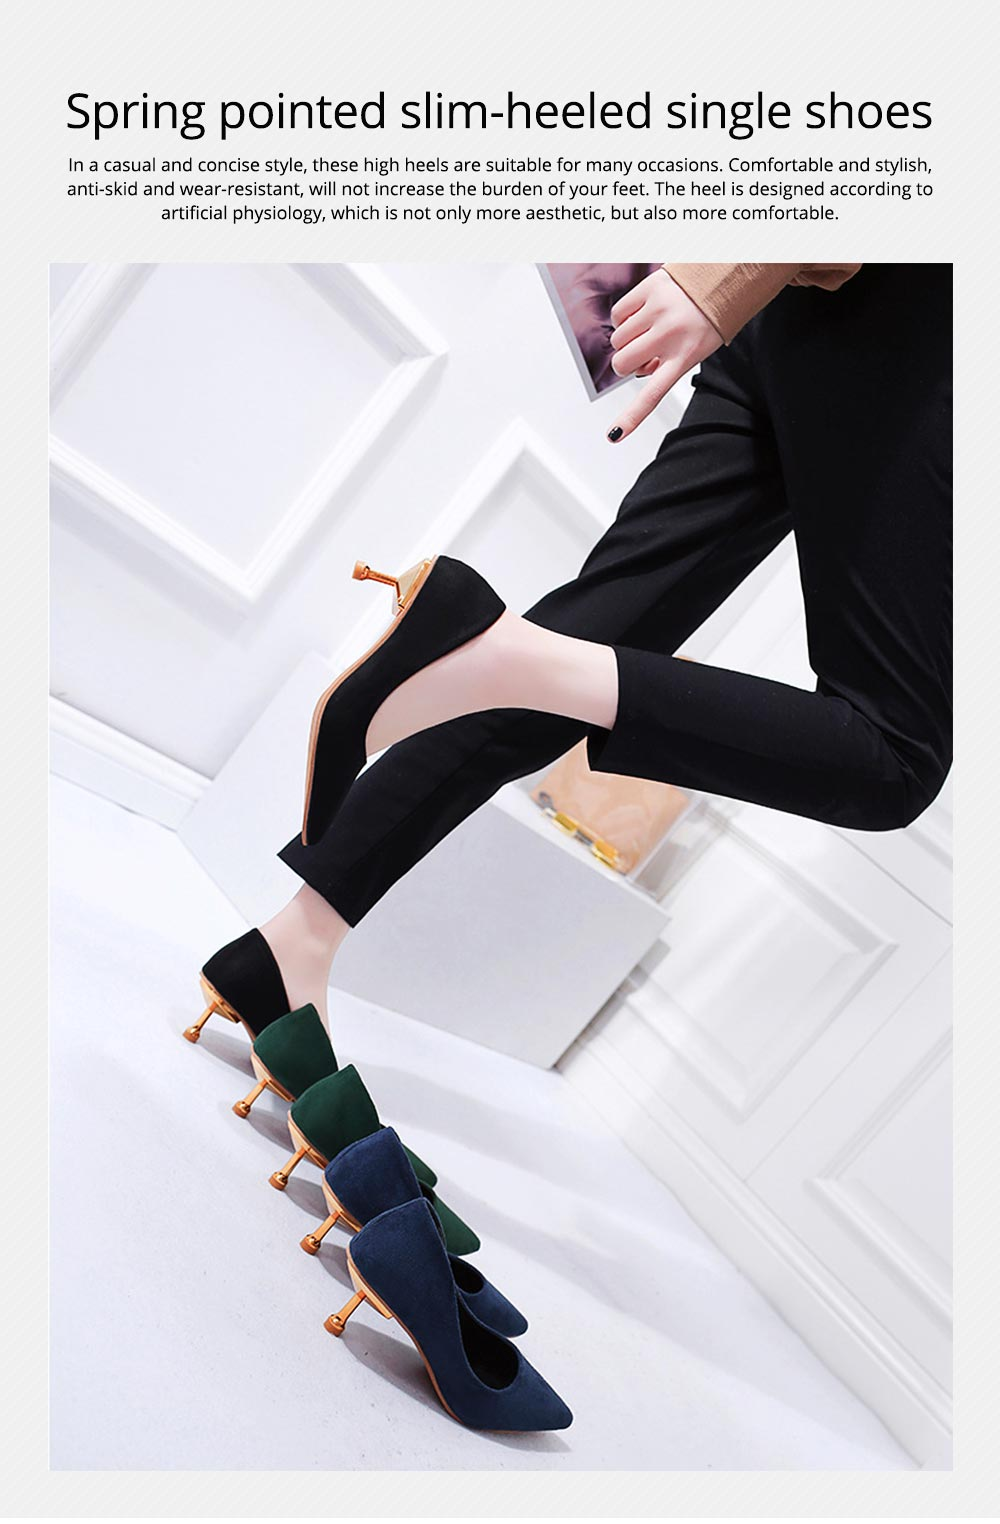 Spring Pointed Slim-heeled Single Shoes, Suede Ladies High-heeled Shoes in 2019, Lady's Black High-heeled Shoes 6CM 0